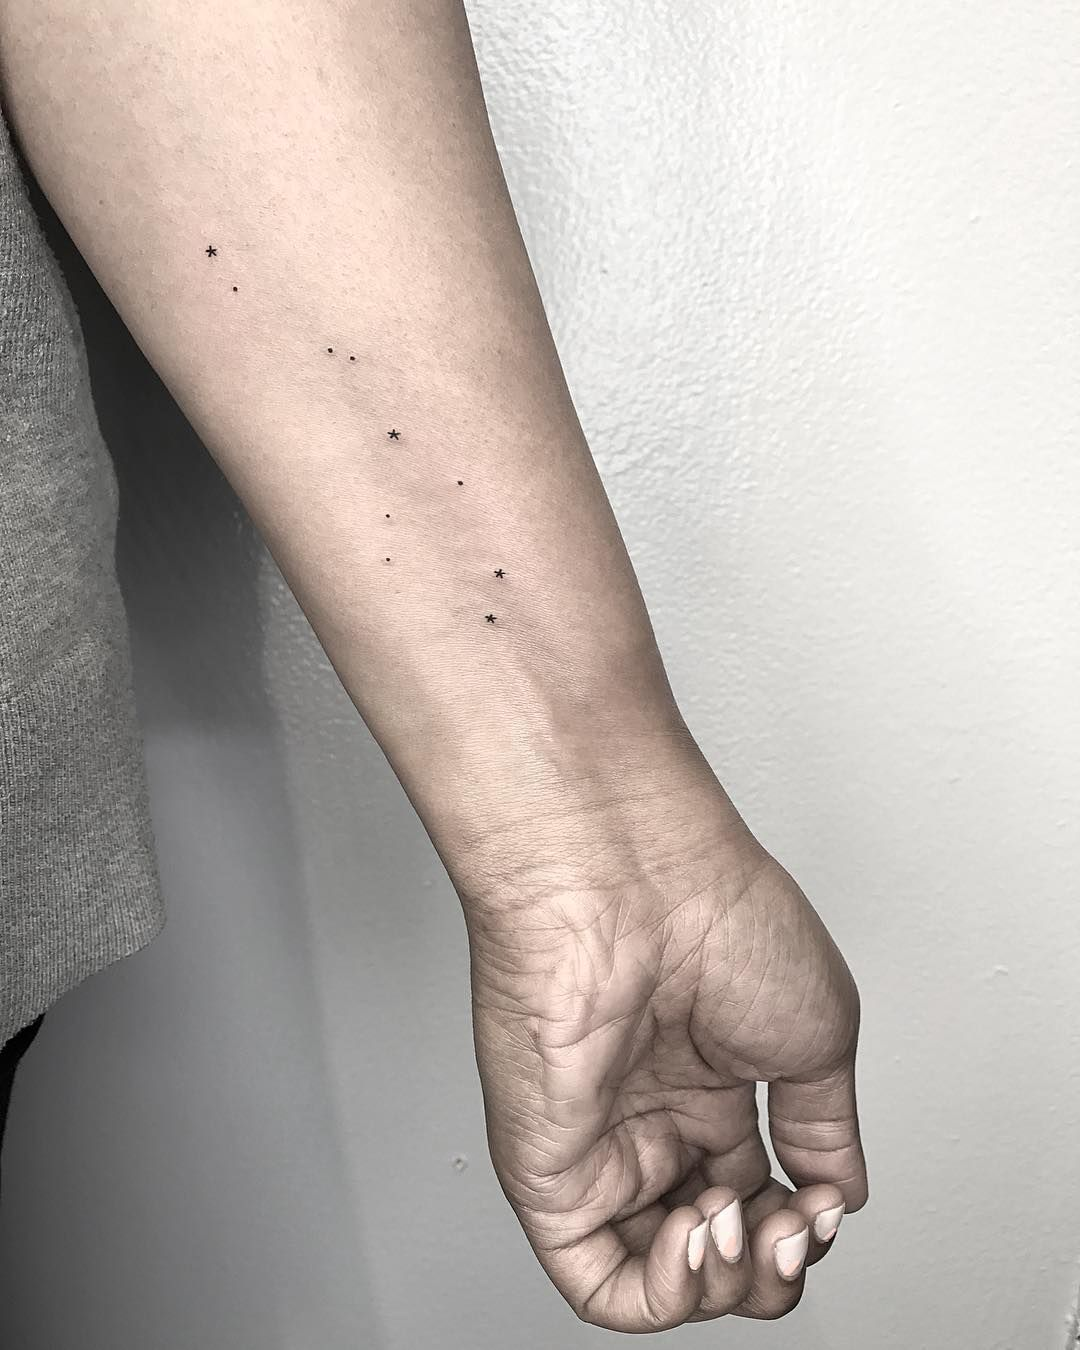 75 Suuuuuuuper Tiny Tattoos That Even Your Grandma Will Approve Of